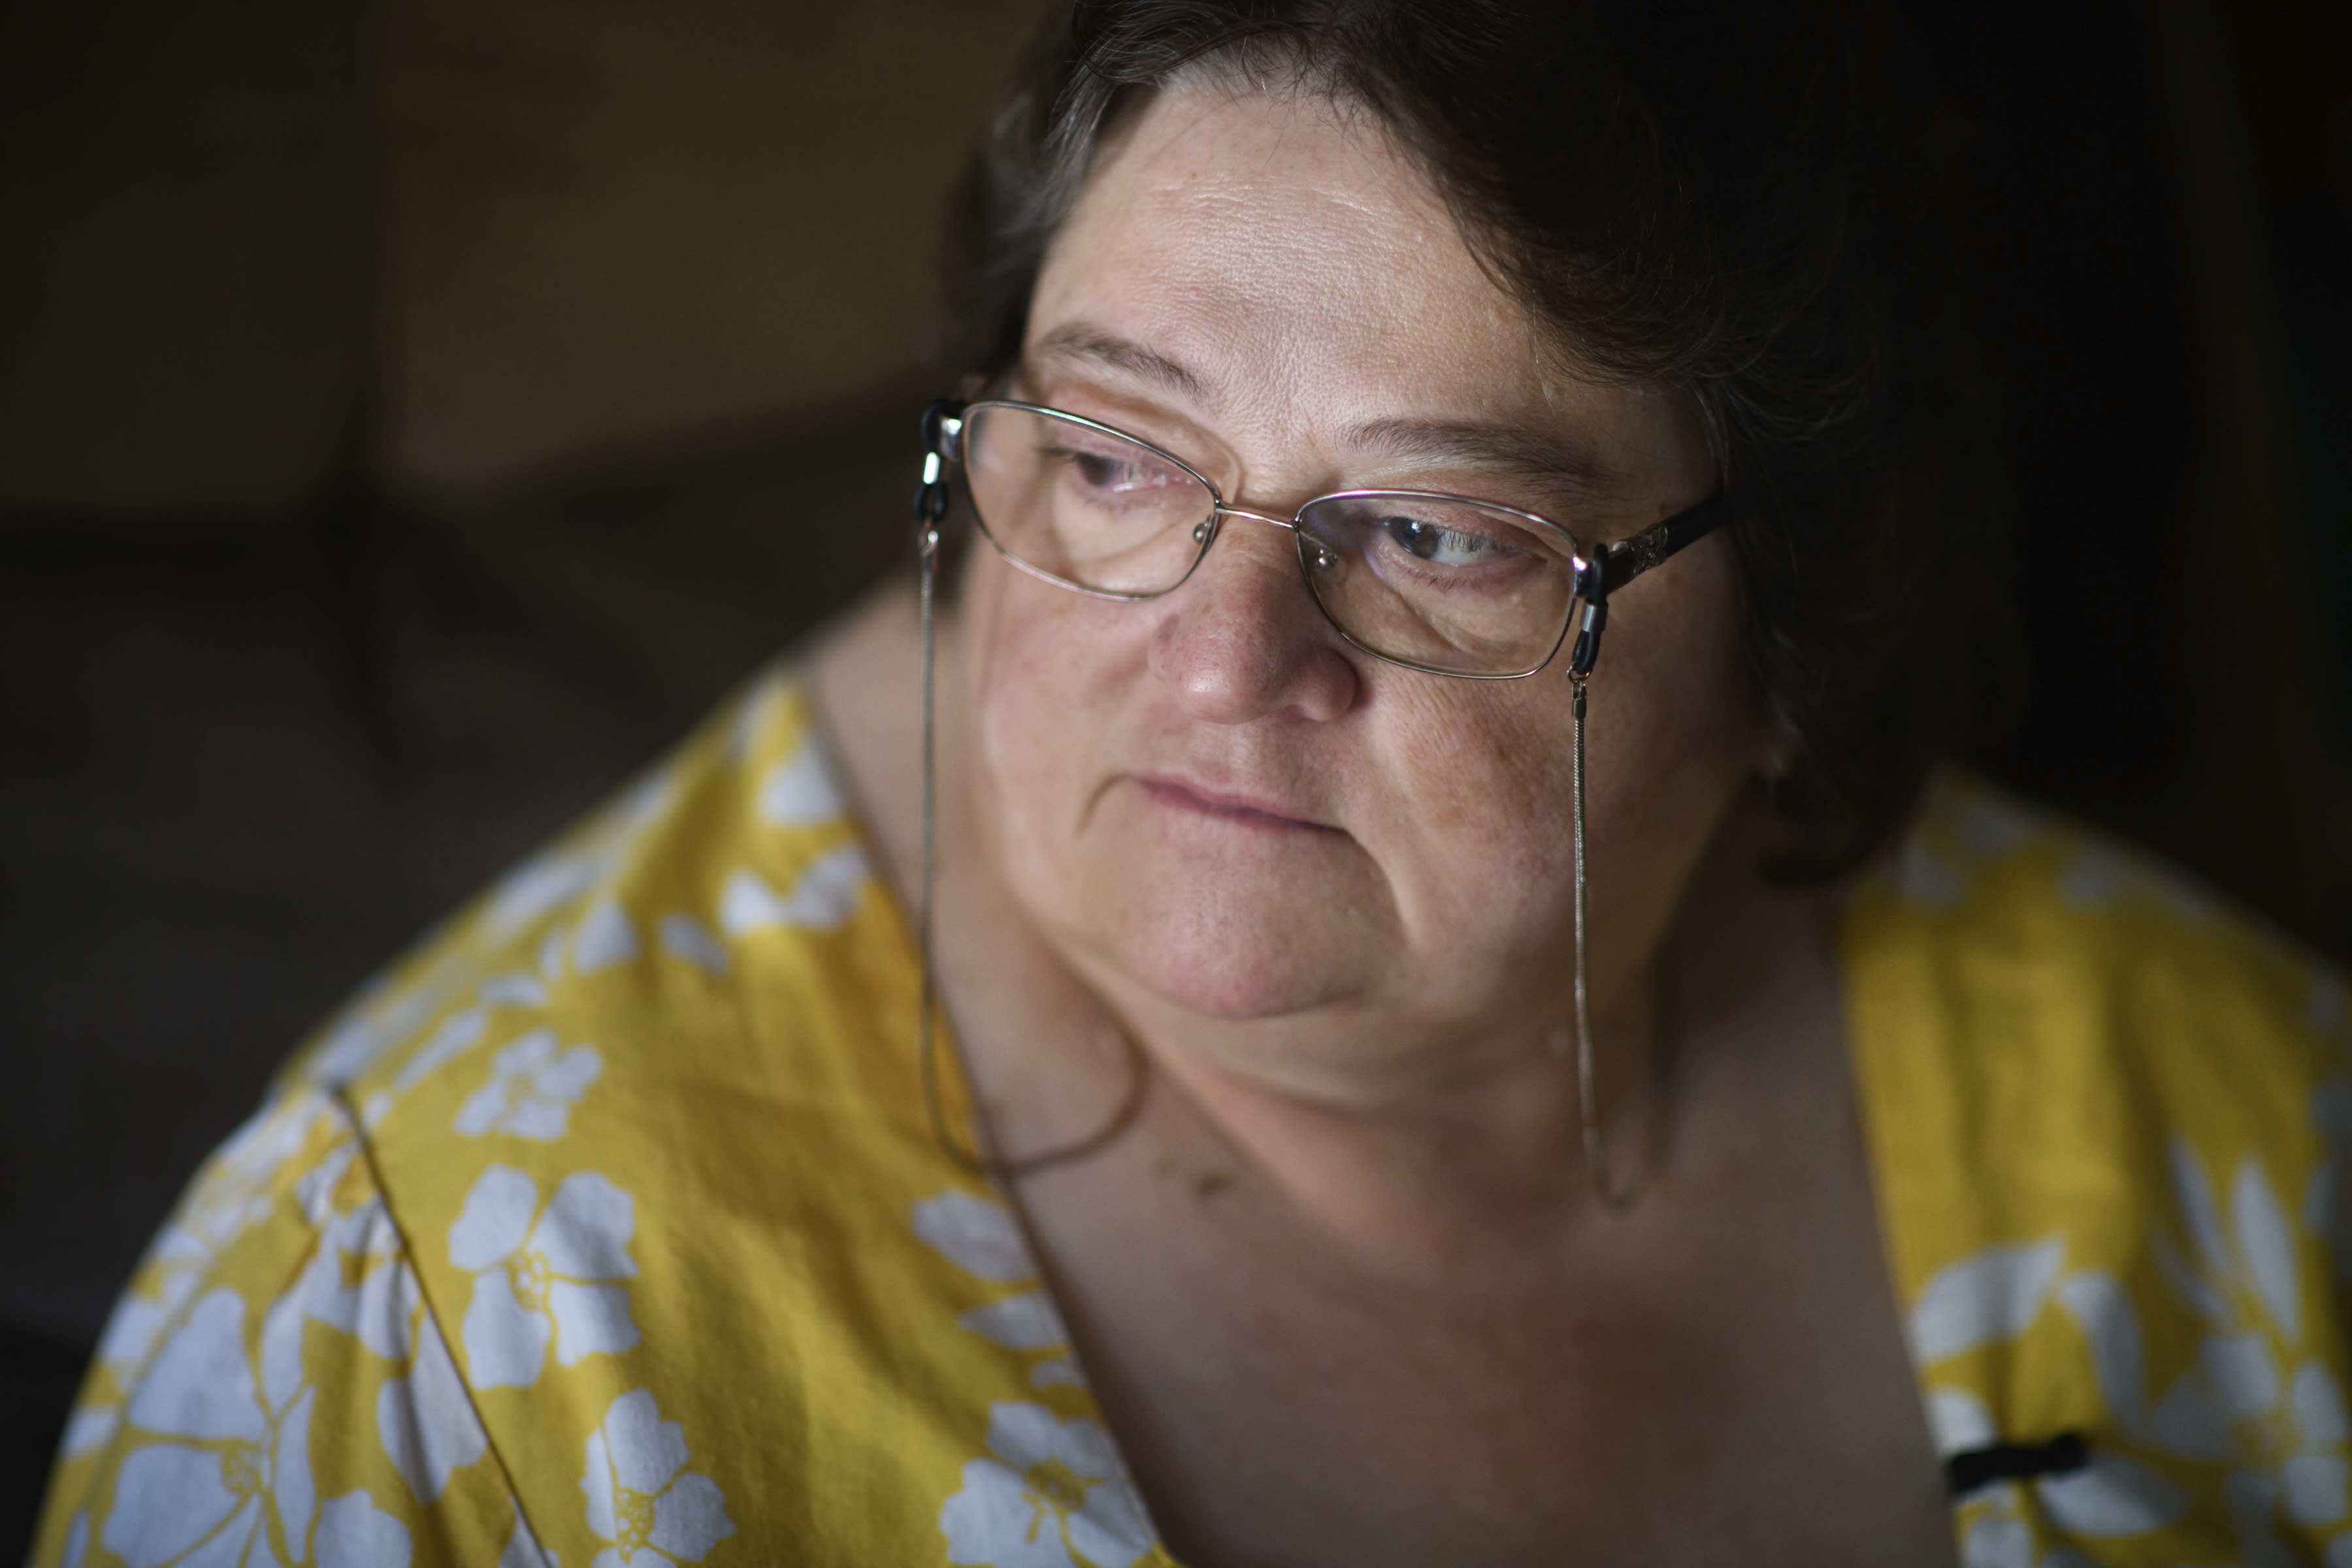 """Doris Kelly, 57, sits in her home on Monday, June 29, 2020 in Ruffs Dale, Pa. Kelly was one of the first patients in a University of Pittsburgh Medical Center trial for COVID-19. """"It felt like someone was sitting on my chest and I couldn't get any air,"""" Kelley said of the disease. (AP Photo/Justin Merriman)"""